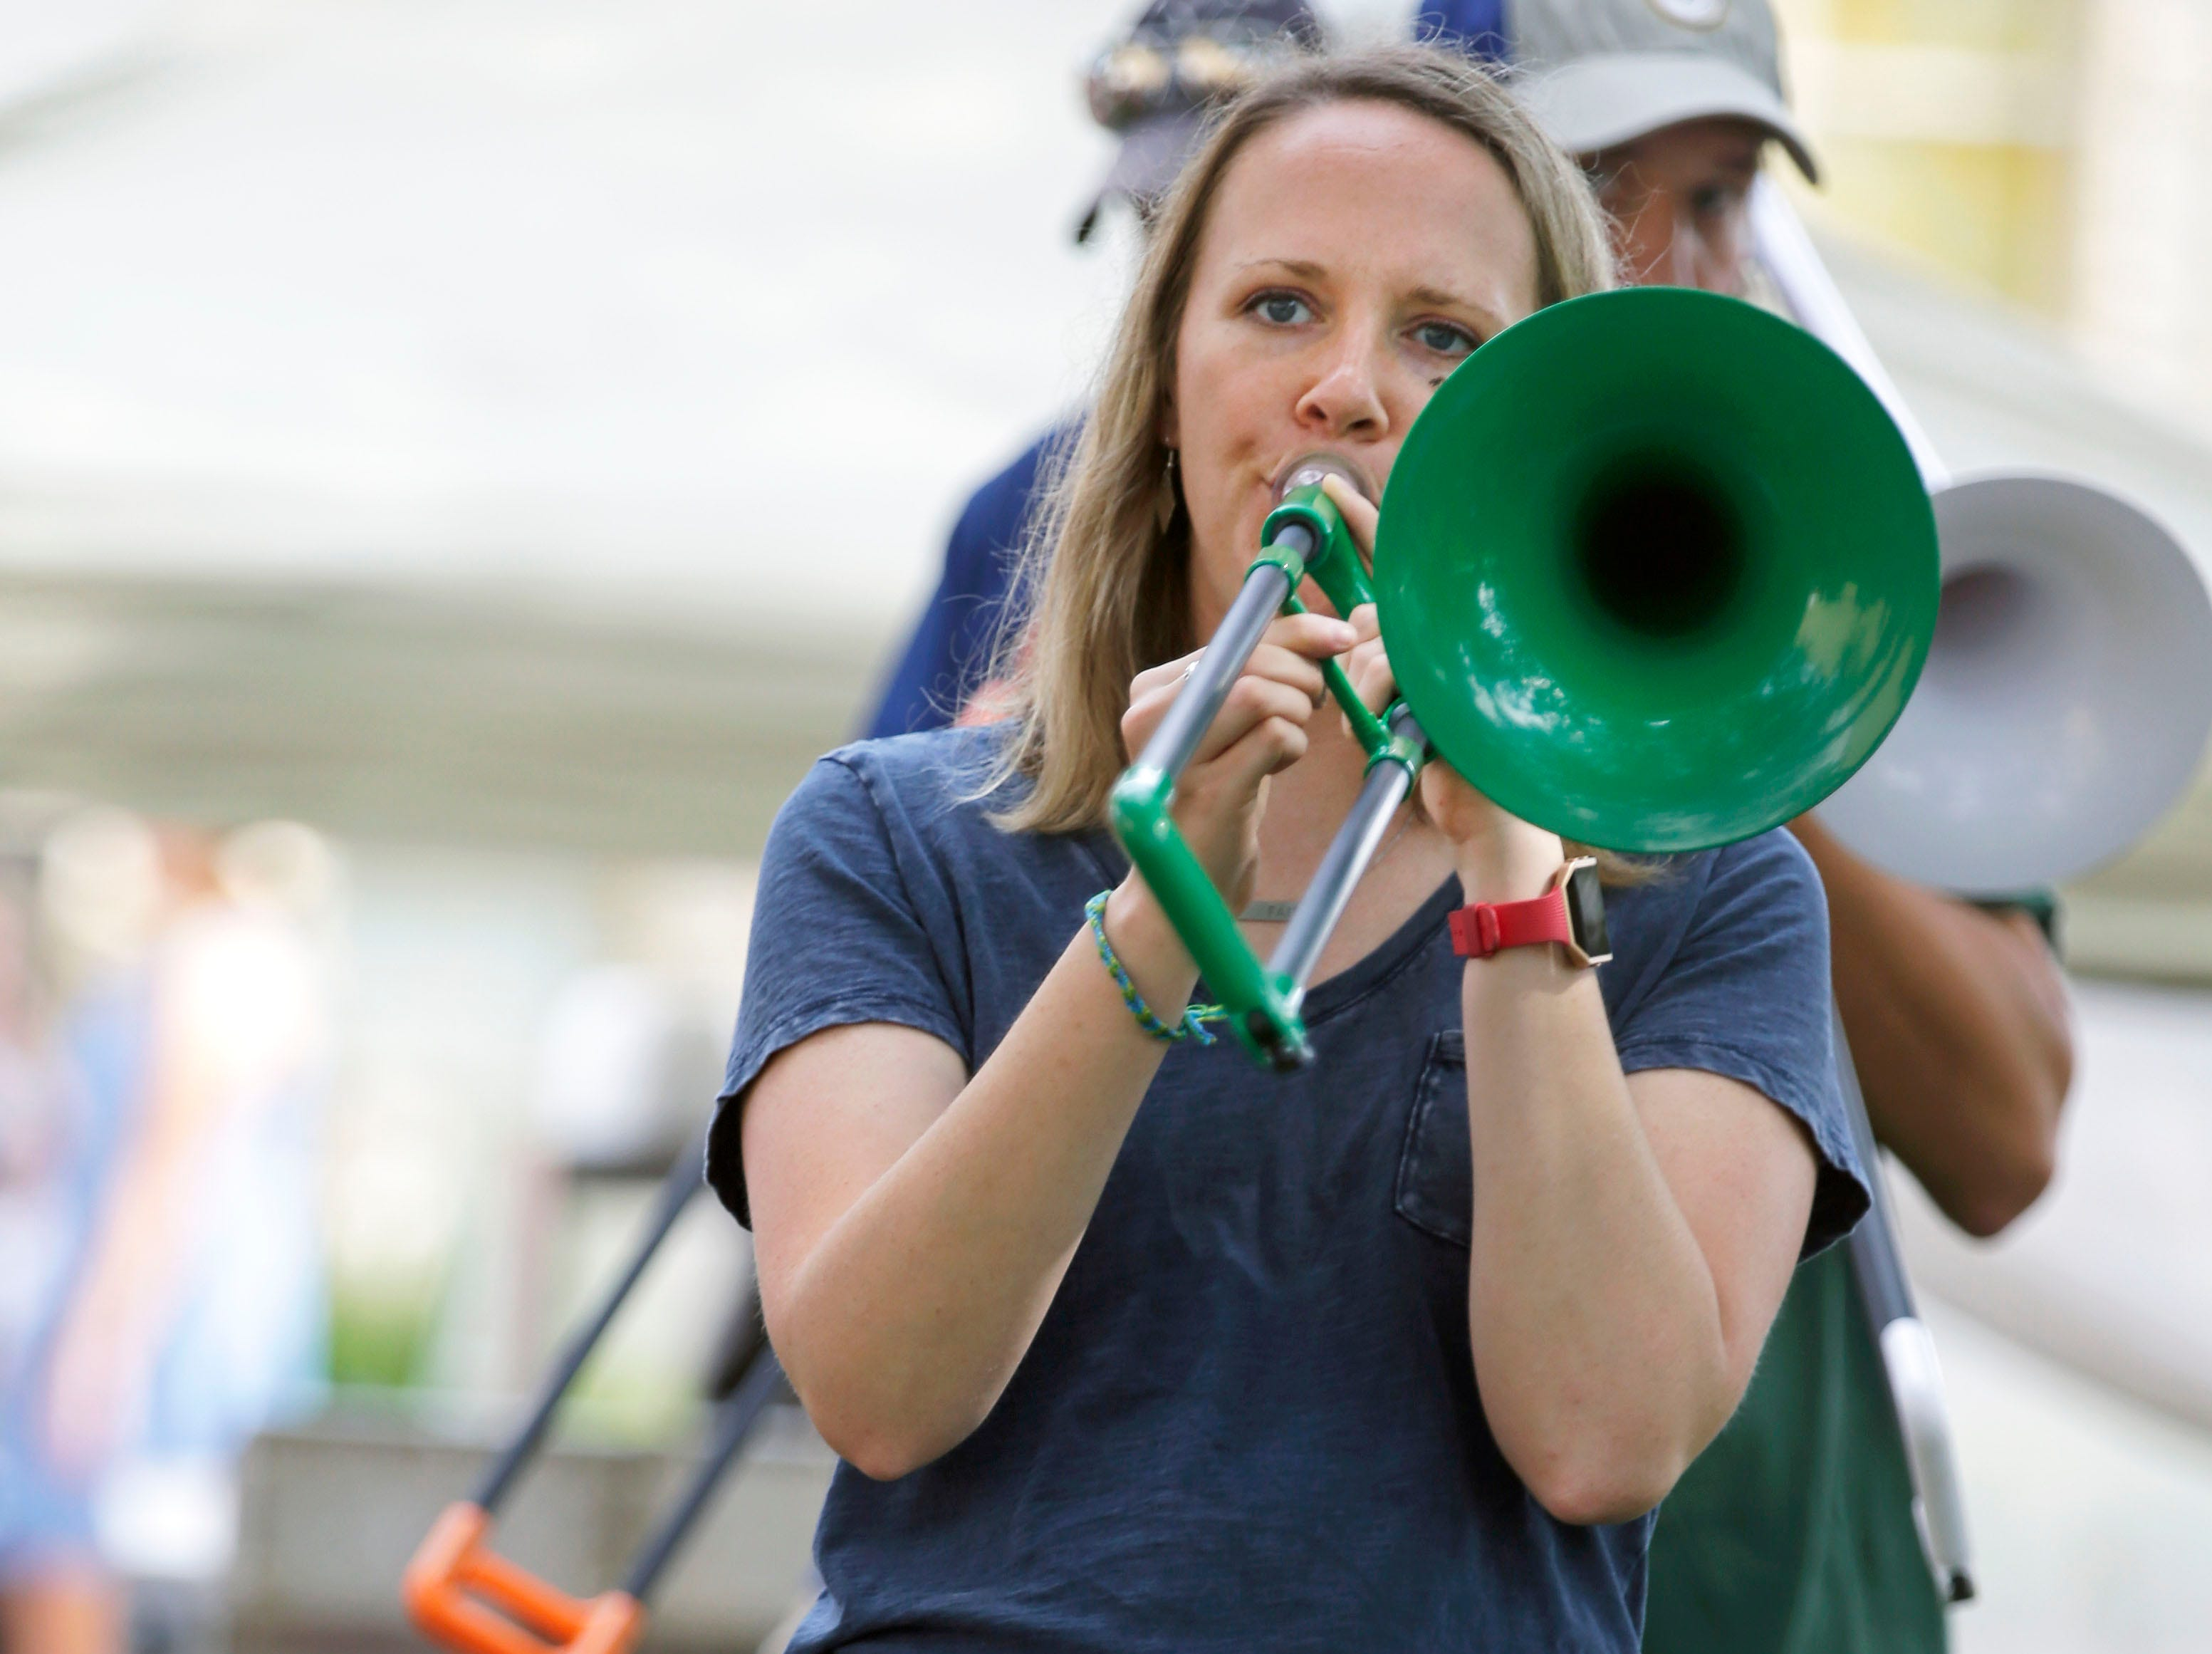 Charlotte Walters covers her ears as her mother, Emily, plays the trombone along with others gathered in the Grove for the pBone Jam as Mile 6, the Mile of Music festival takes place Saturday, August 4, 2018, in Appleton, Wis.